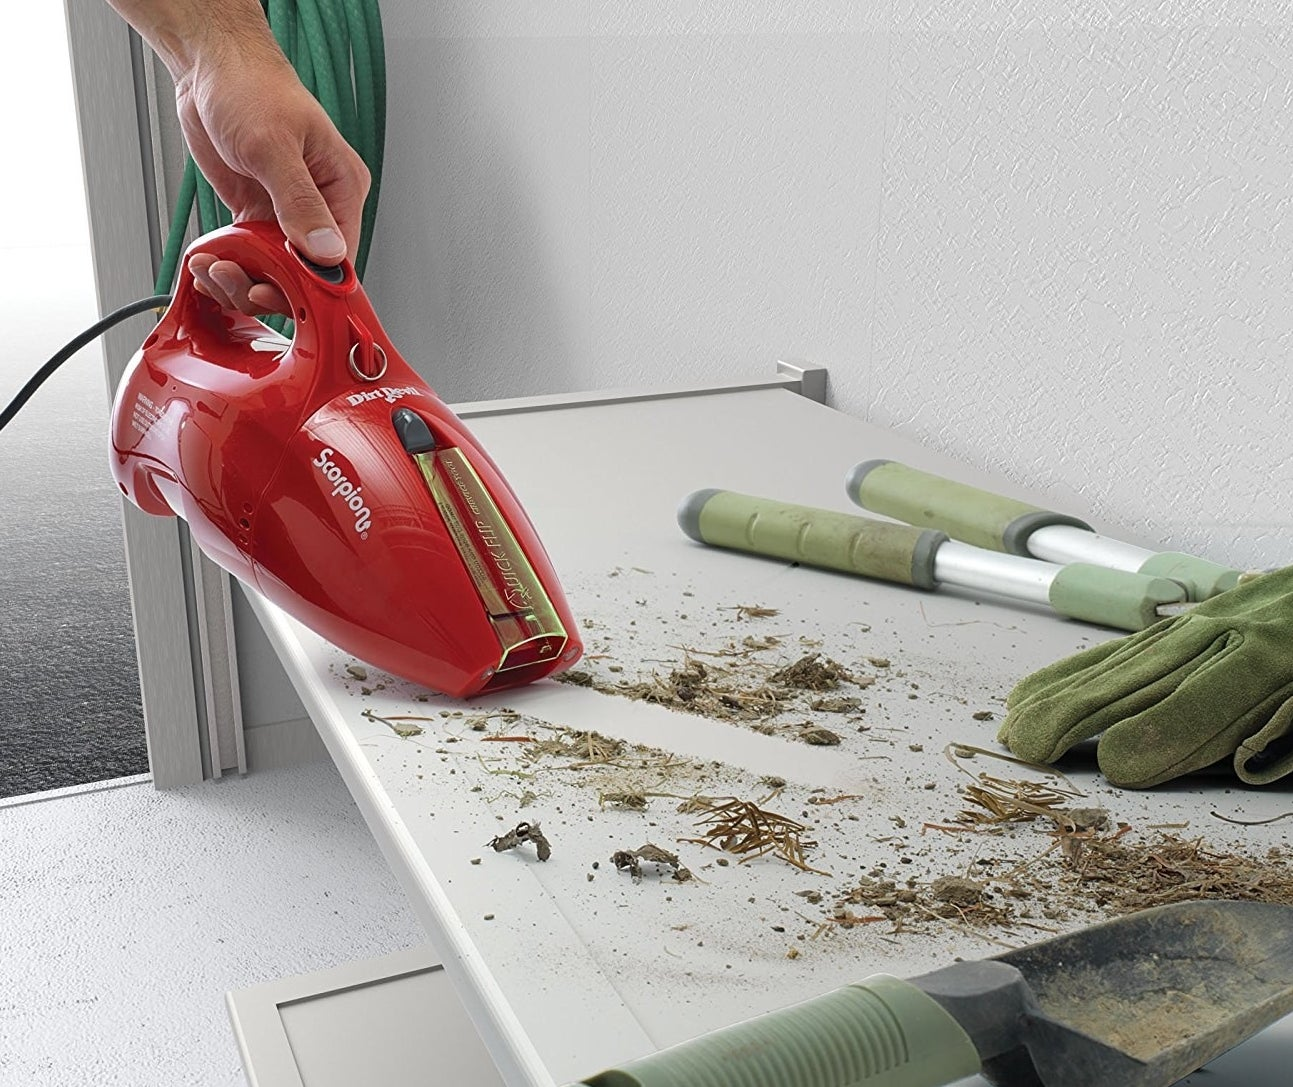 small red vacuum sucking up spilled dirt